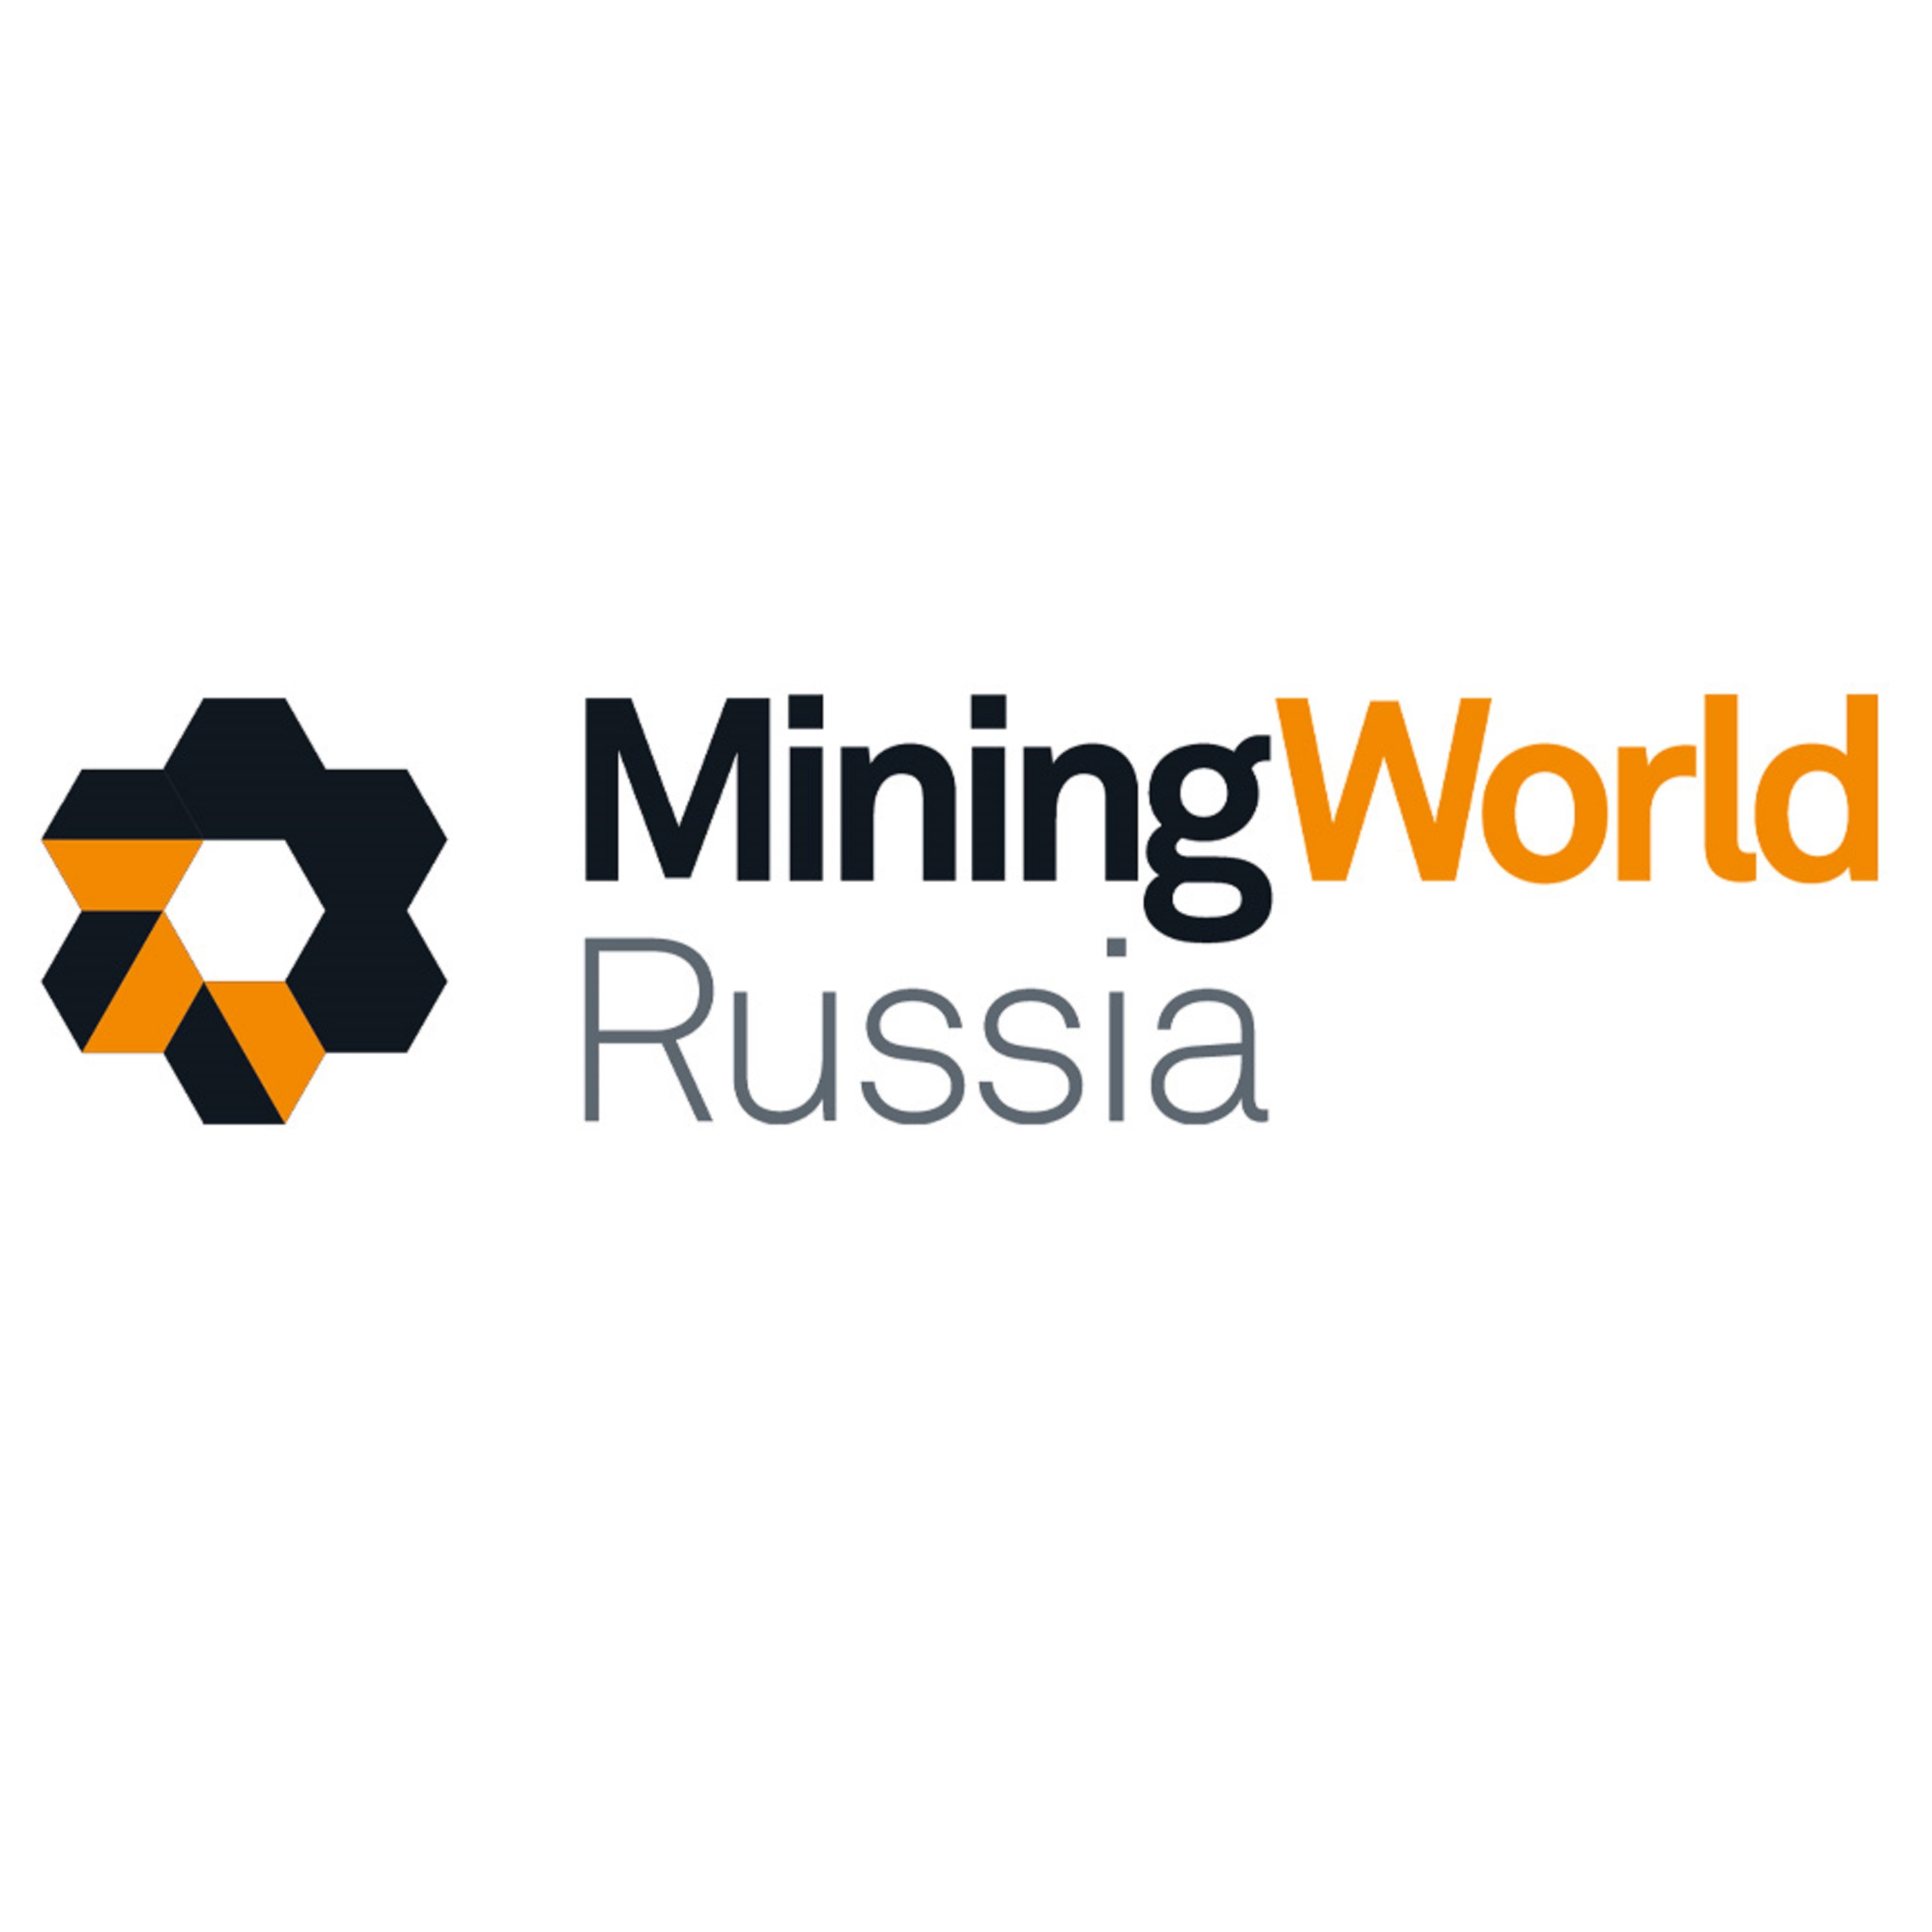 Composit примет участие в MiningWorld Russia 2020